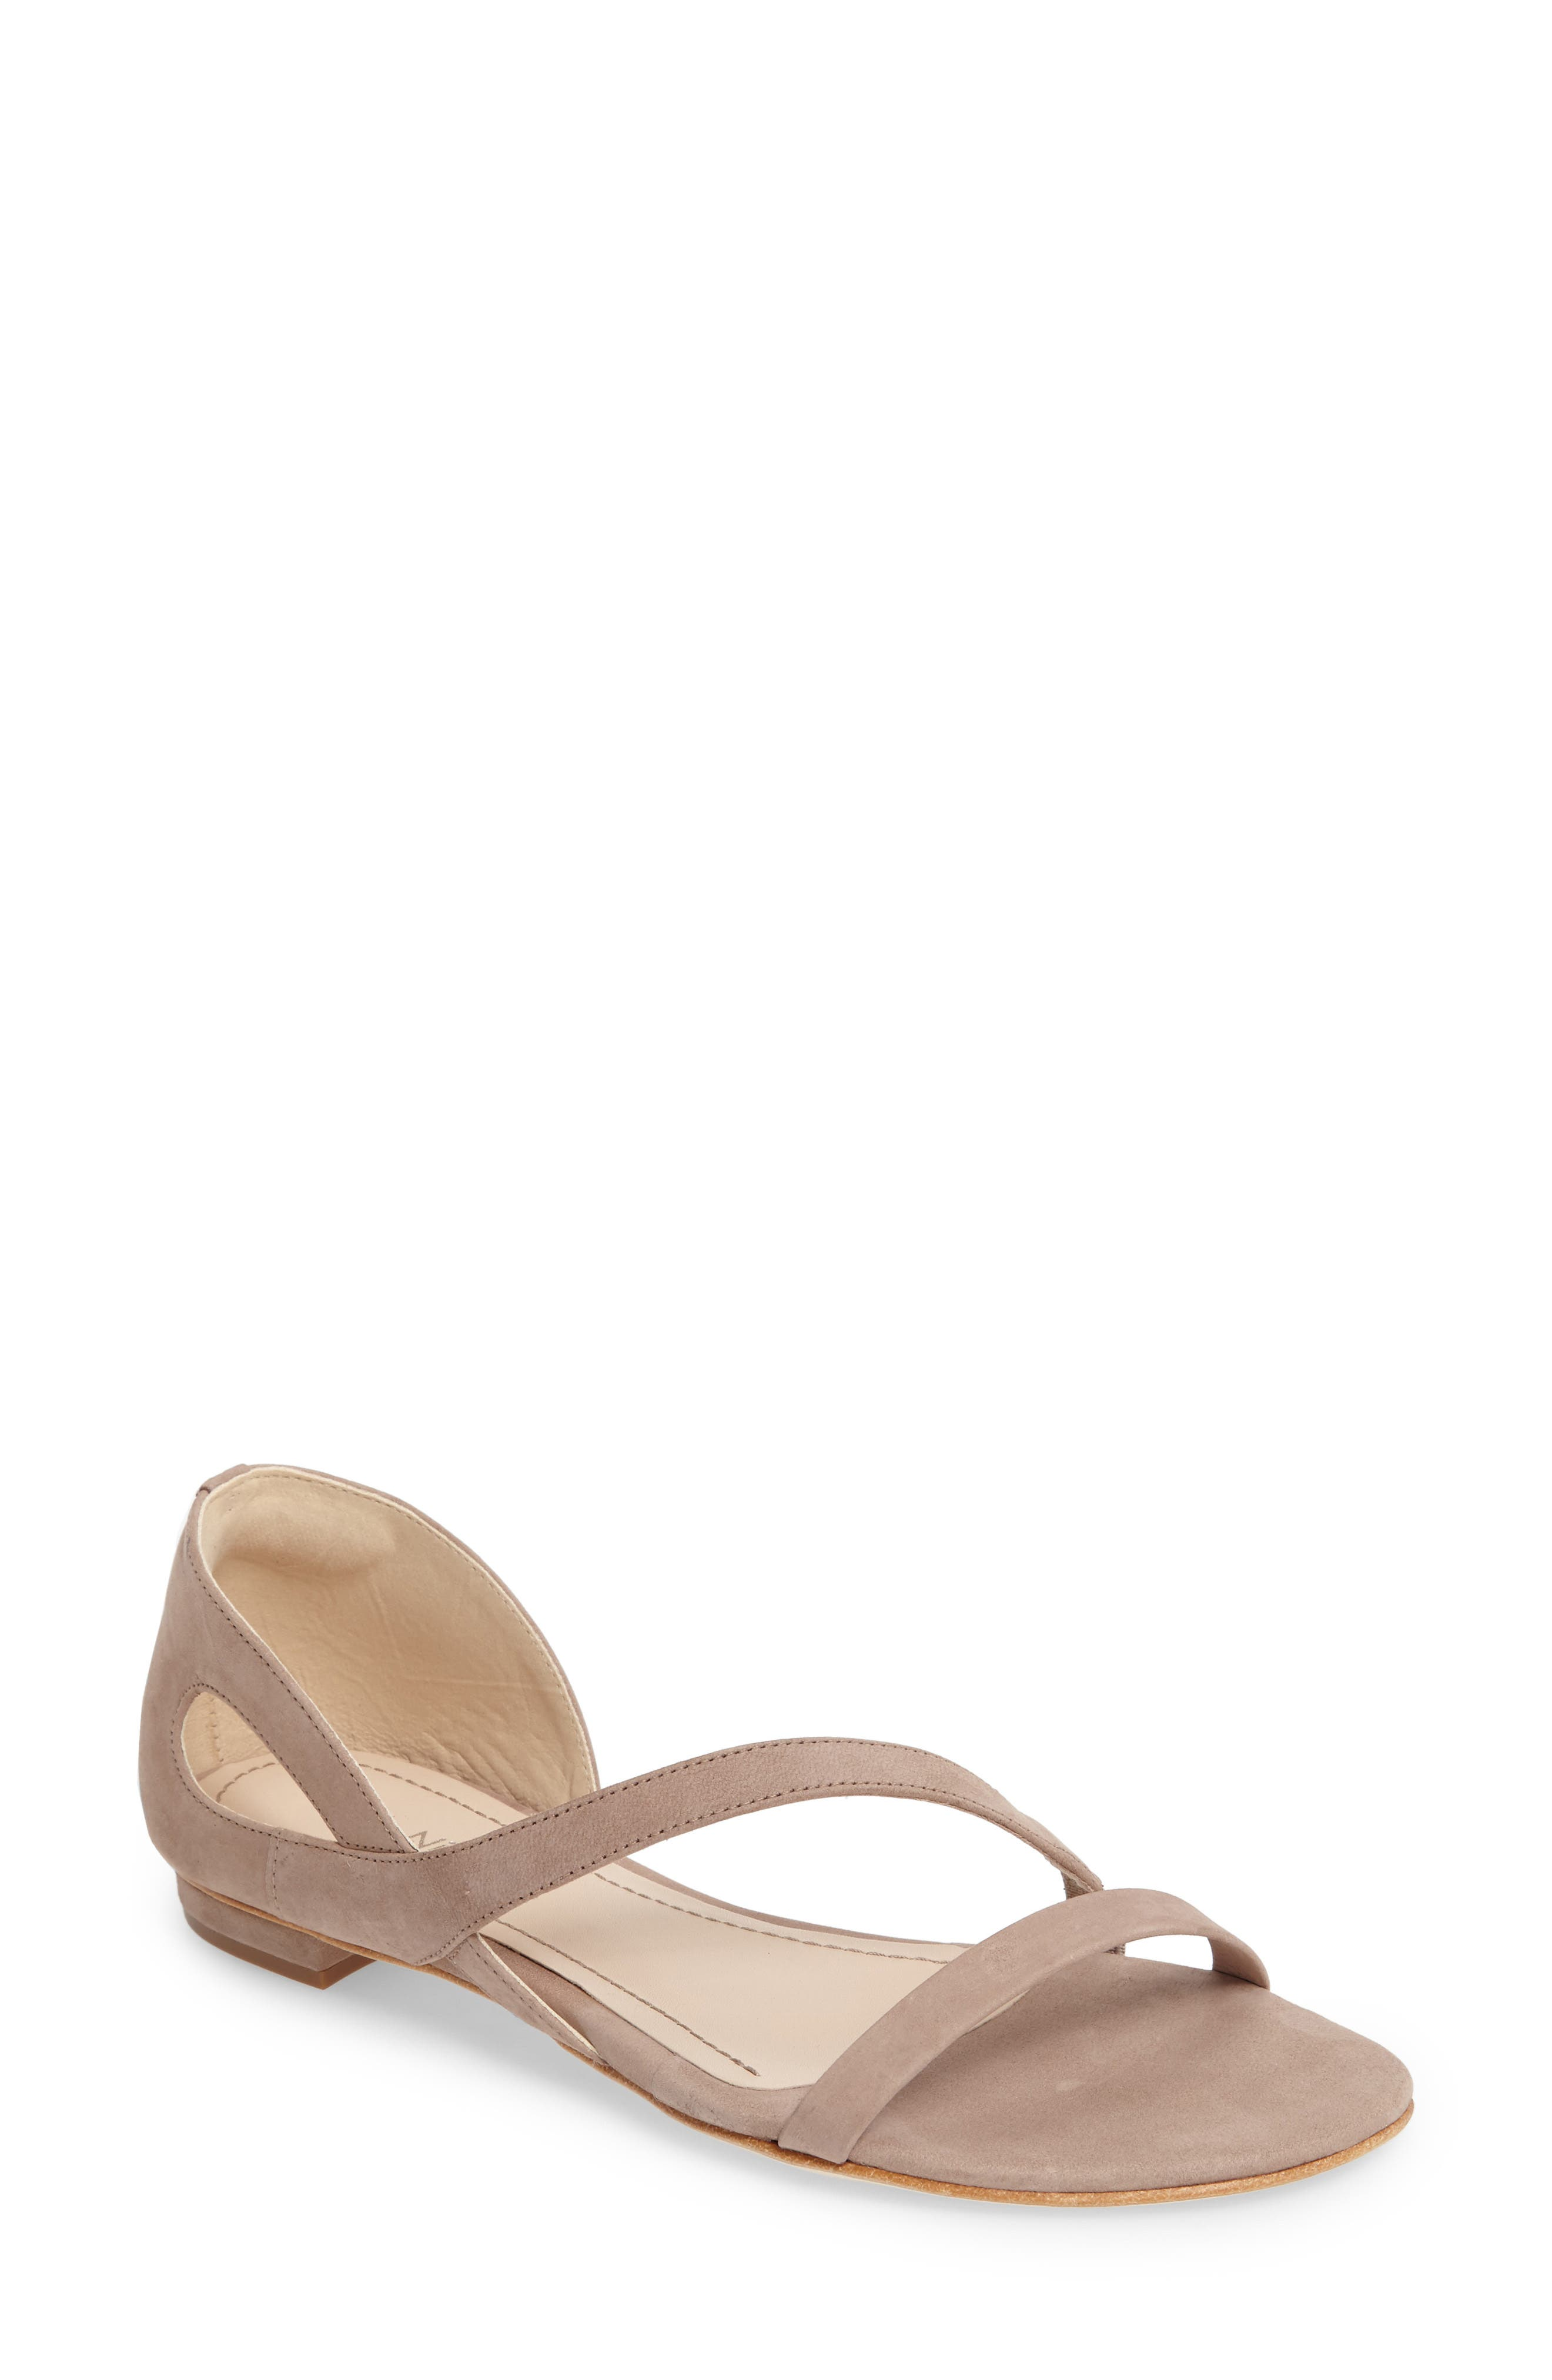 Jeanne Sandal,                         Main,                         color, Taupe Leather